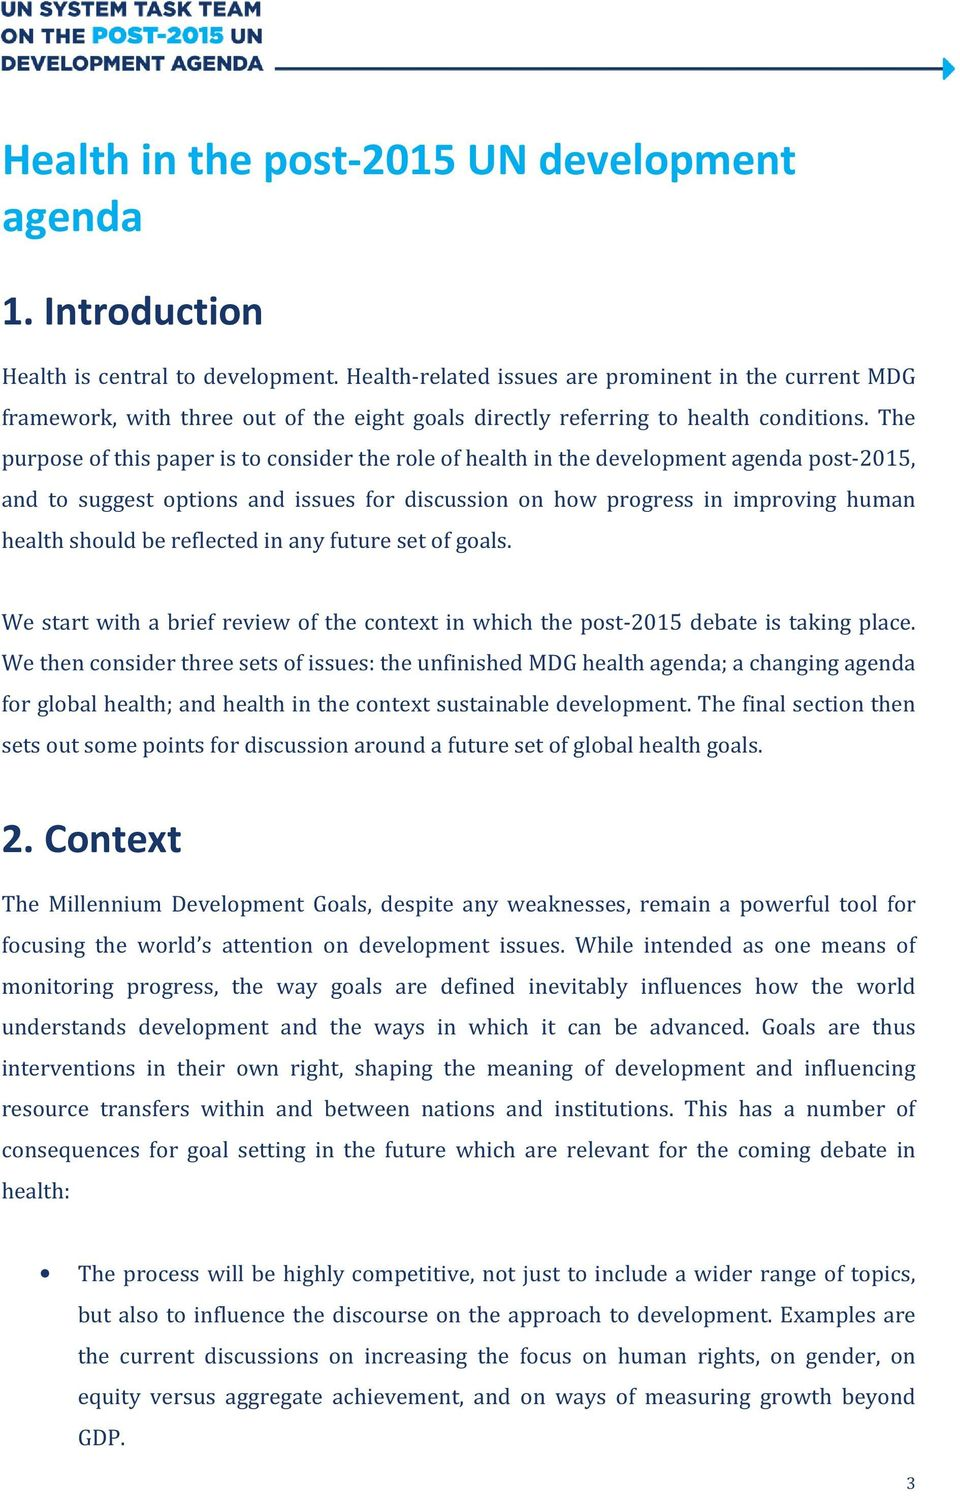 The purpose of this paper is to consider the role of health in the development agenda post-2015, and to suggest options and issues for discussion on how progress in improving human health should be